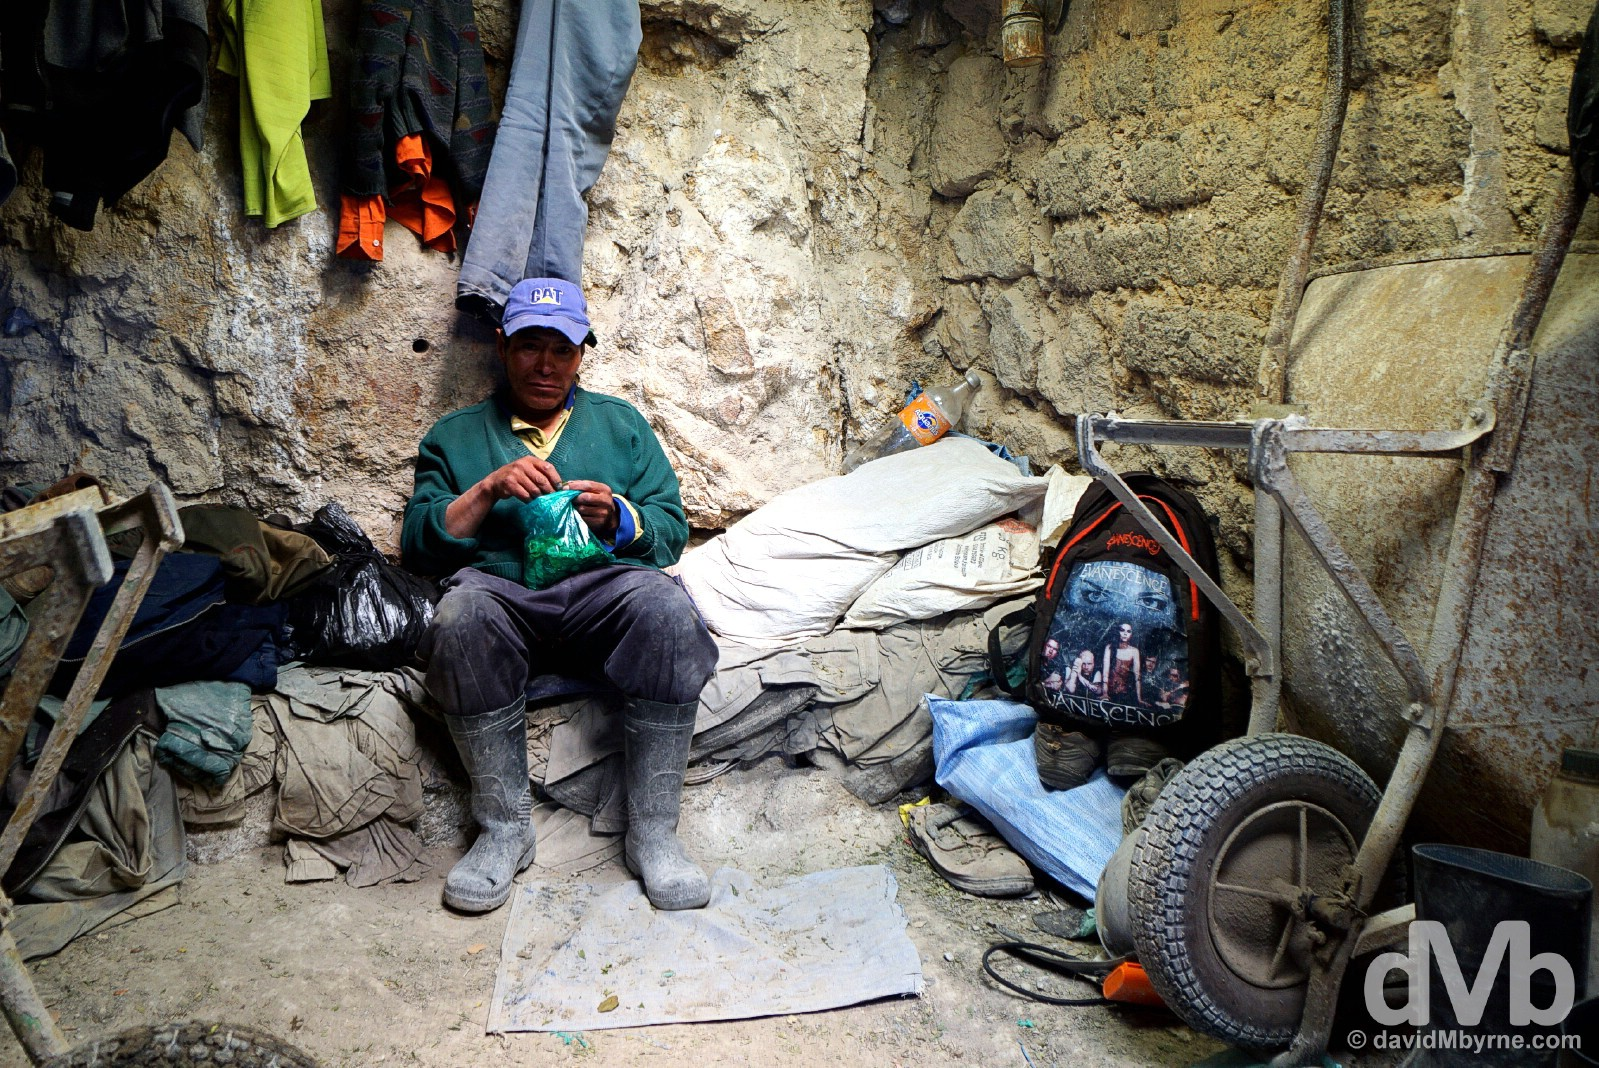 A miner during a break from work in the Cerro Rico Mines, Potosi, Bolivia. September 1, 2015.